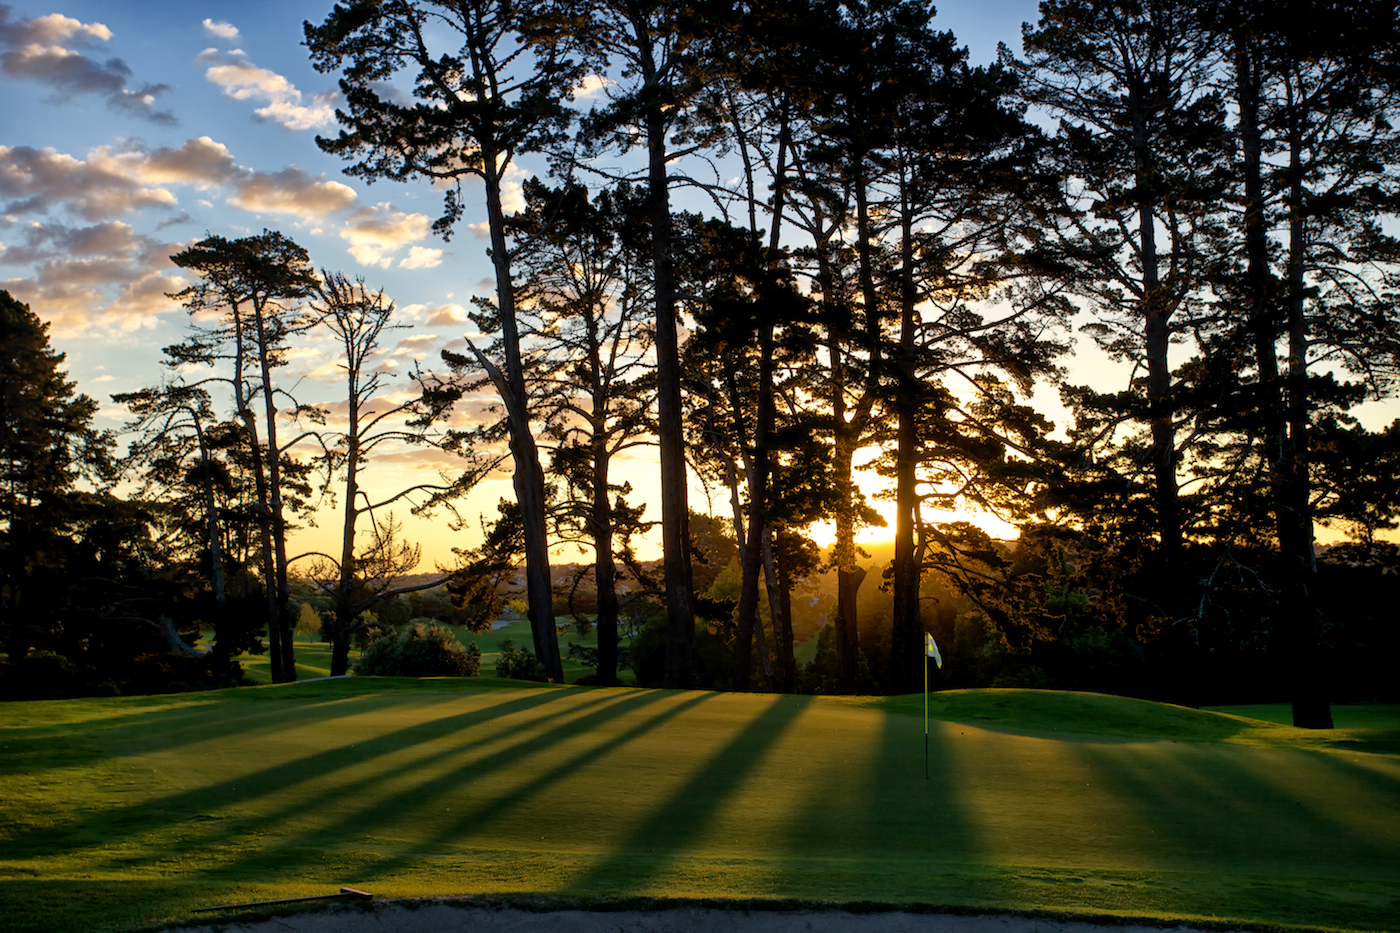 <strong>REMUERA GOLF CLUB<span><b>view larger</b></span></strong><i>&rarr;</i>